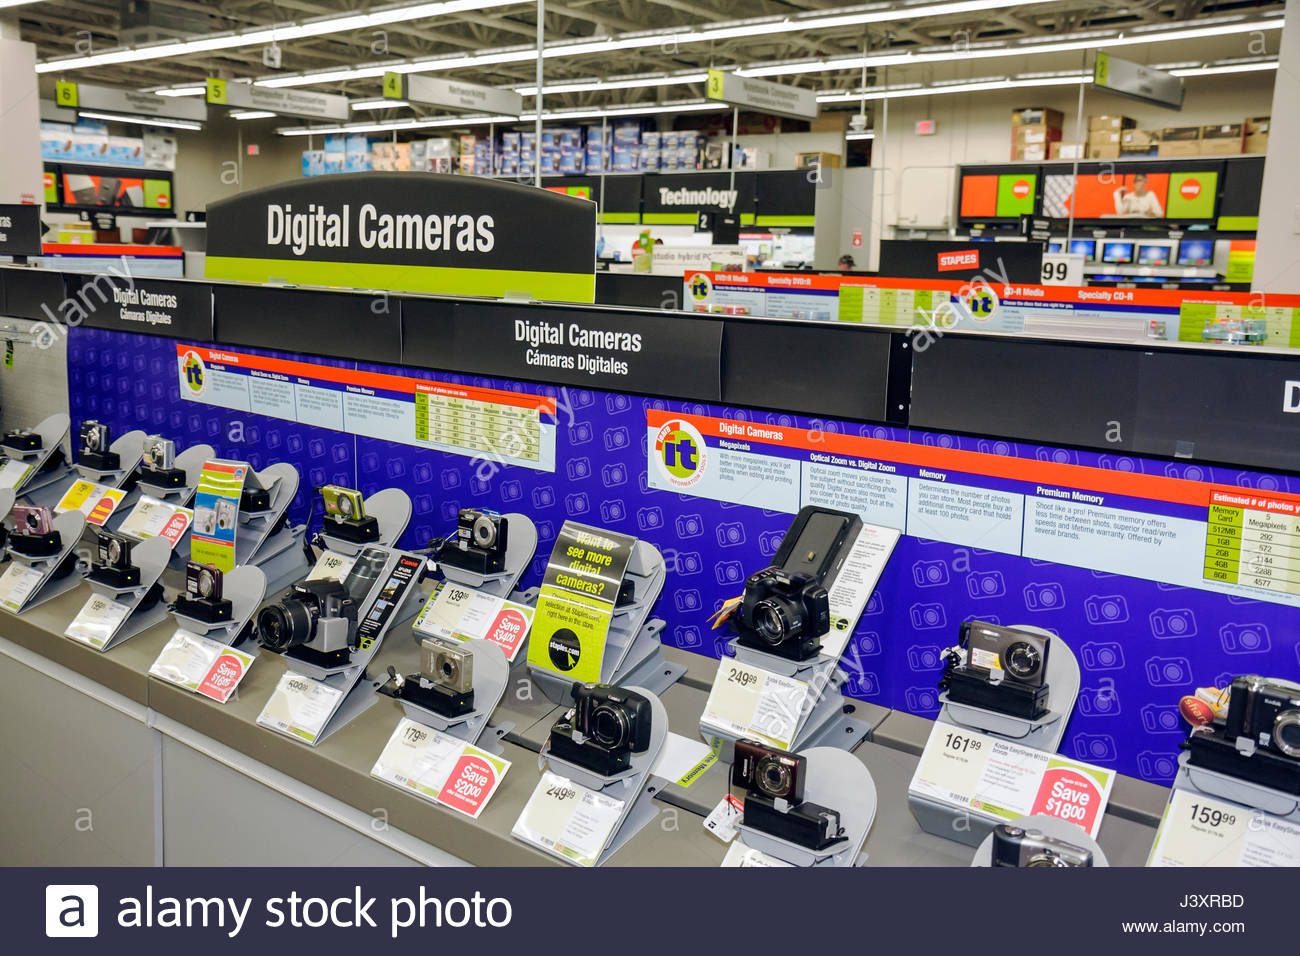 office merchandise. Miami Florida Staples Office Supply Products Store Retail Business Chain Merchandise Display Digital Camera Price C